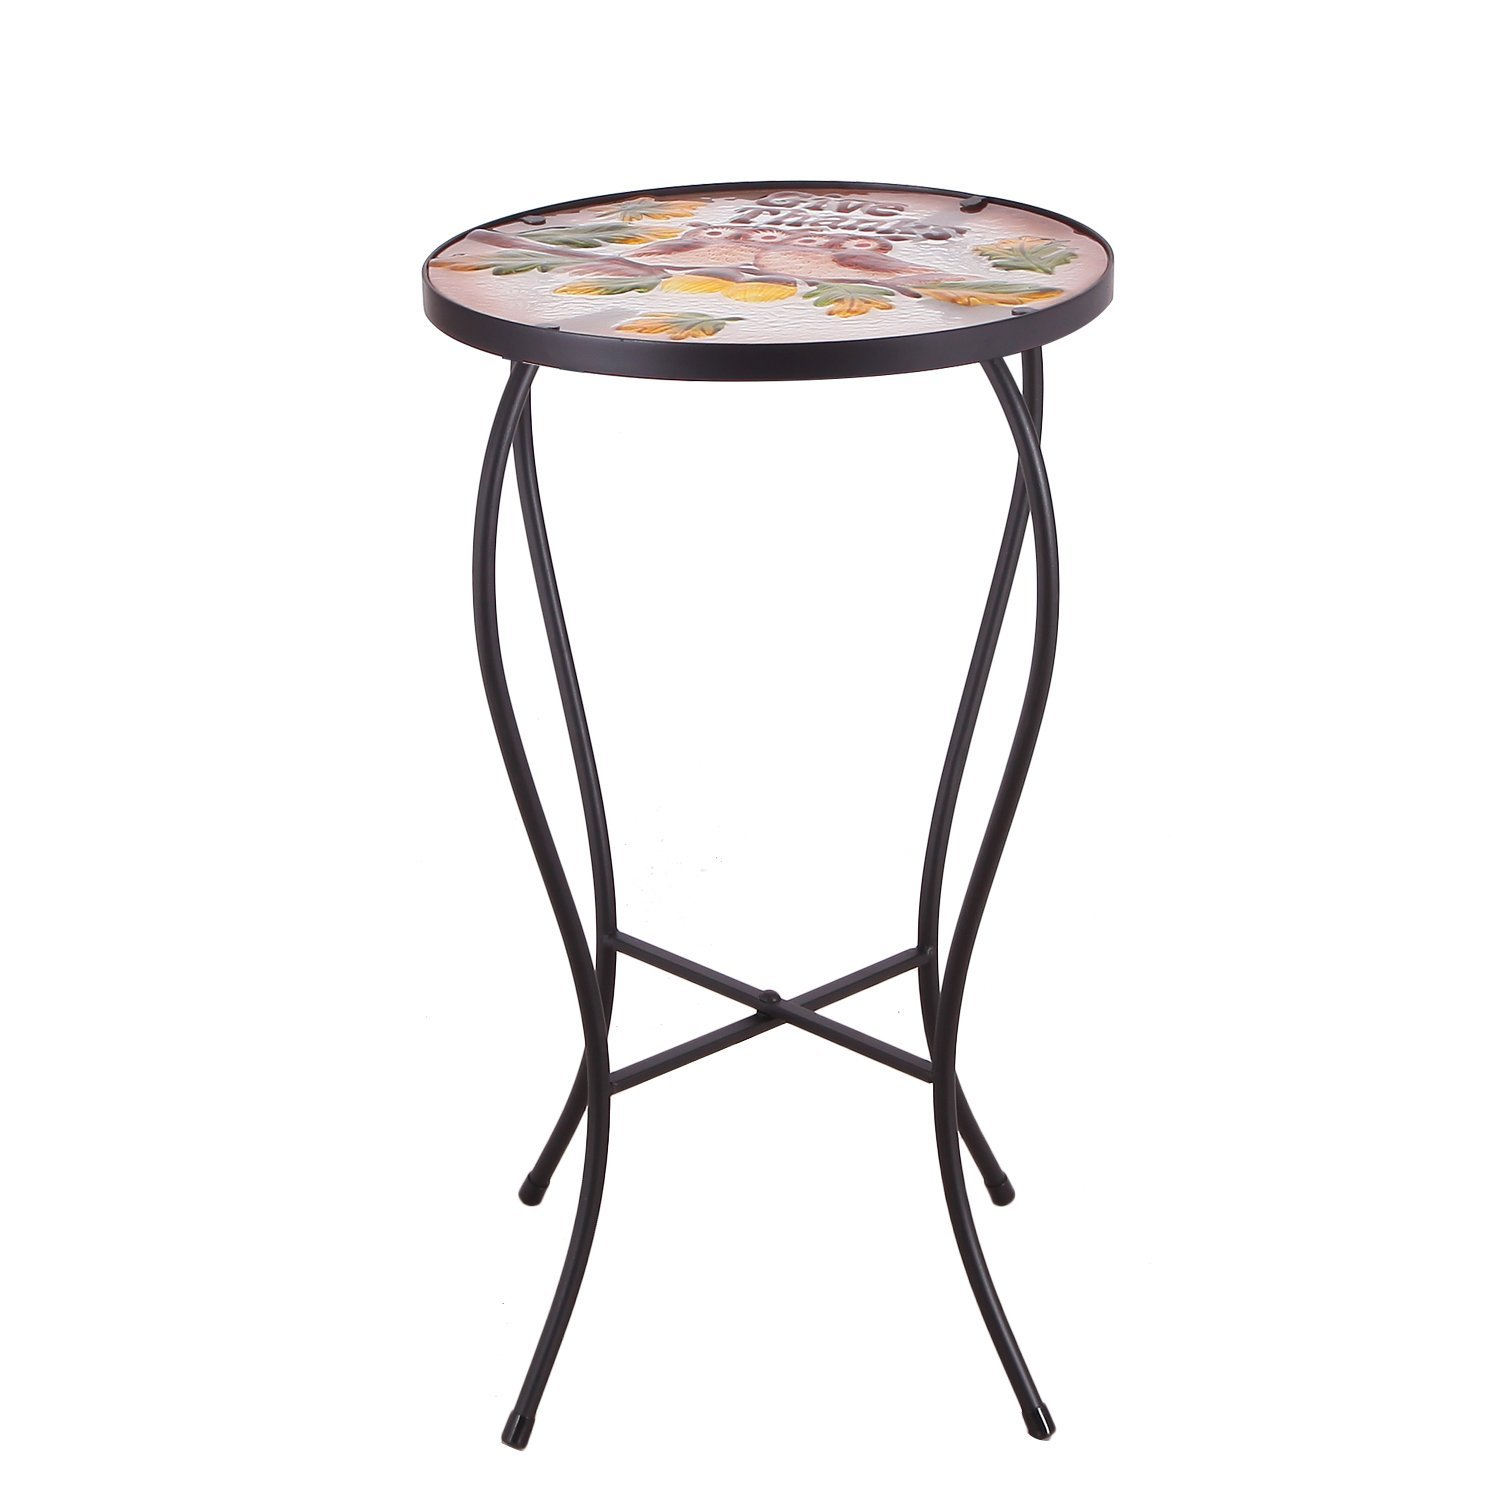 homebeez couple owes mosaic round plant stand accent outdoor table black side color curve tube legs indoor height inches garden stone coffee square patio set cover lamp shades for